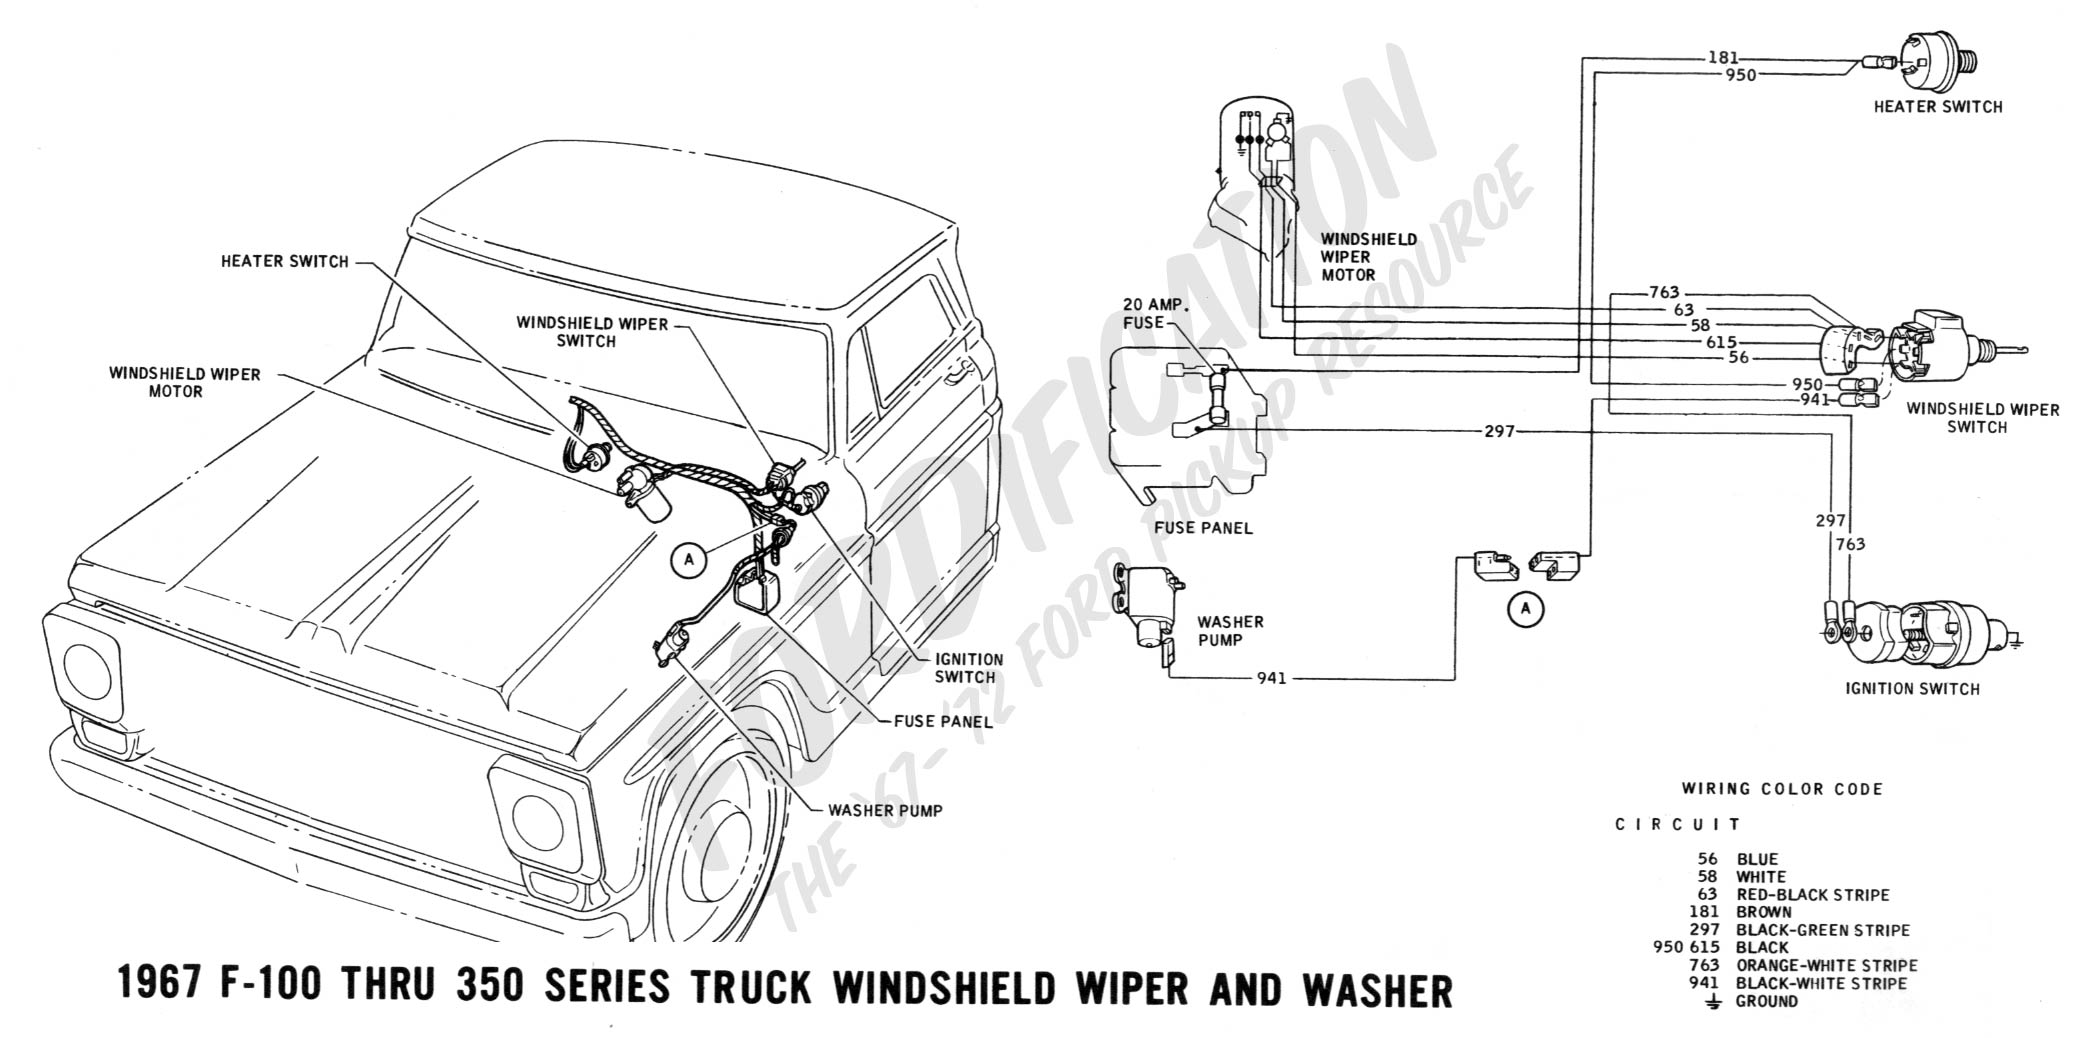 wiring 1967wipers ford truck technical drawings and schematics section h wiring wiper switch wiring diagram at gsmx.co